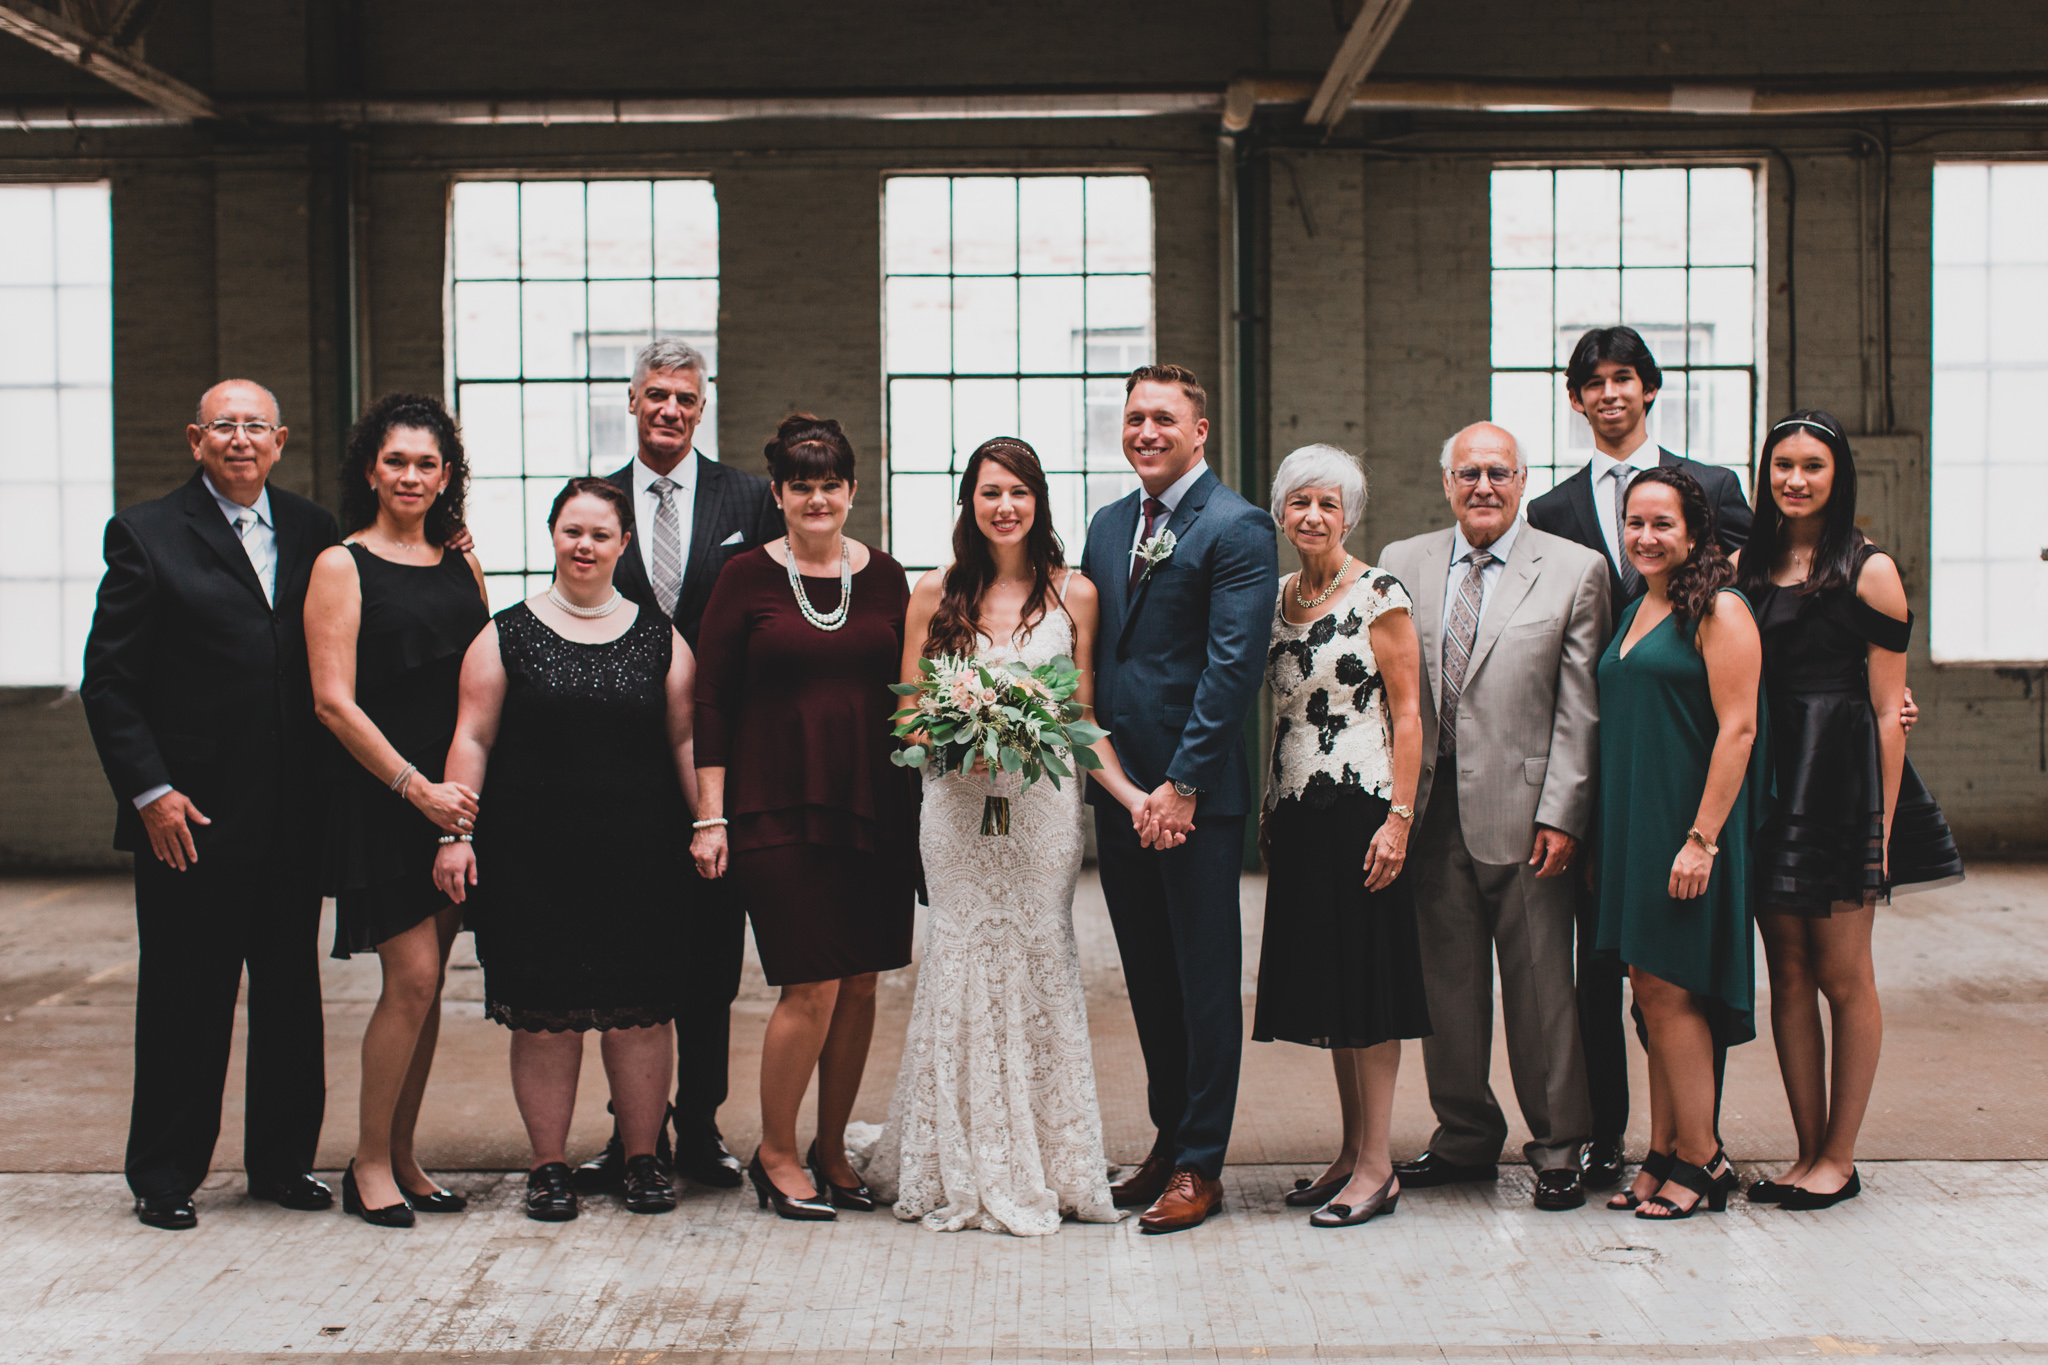 Ottawa Wedding photographer, Family portraits